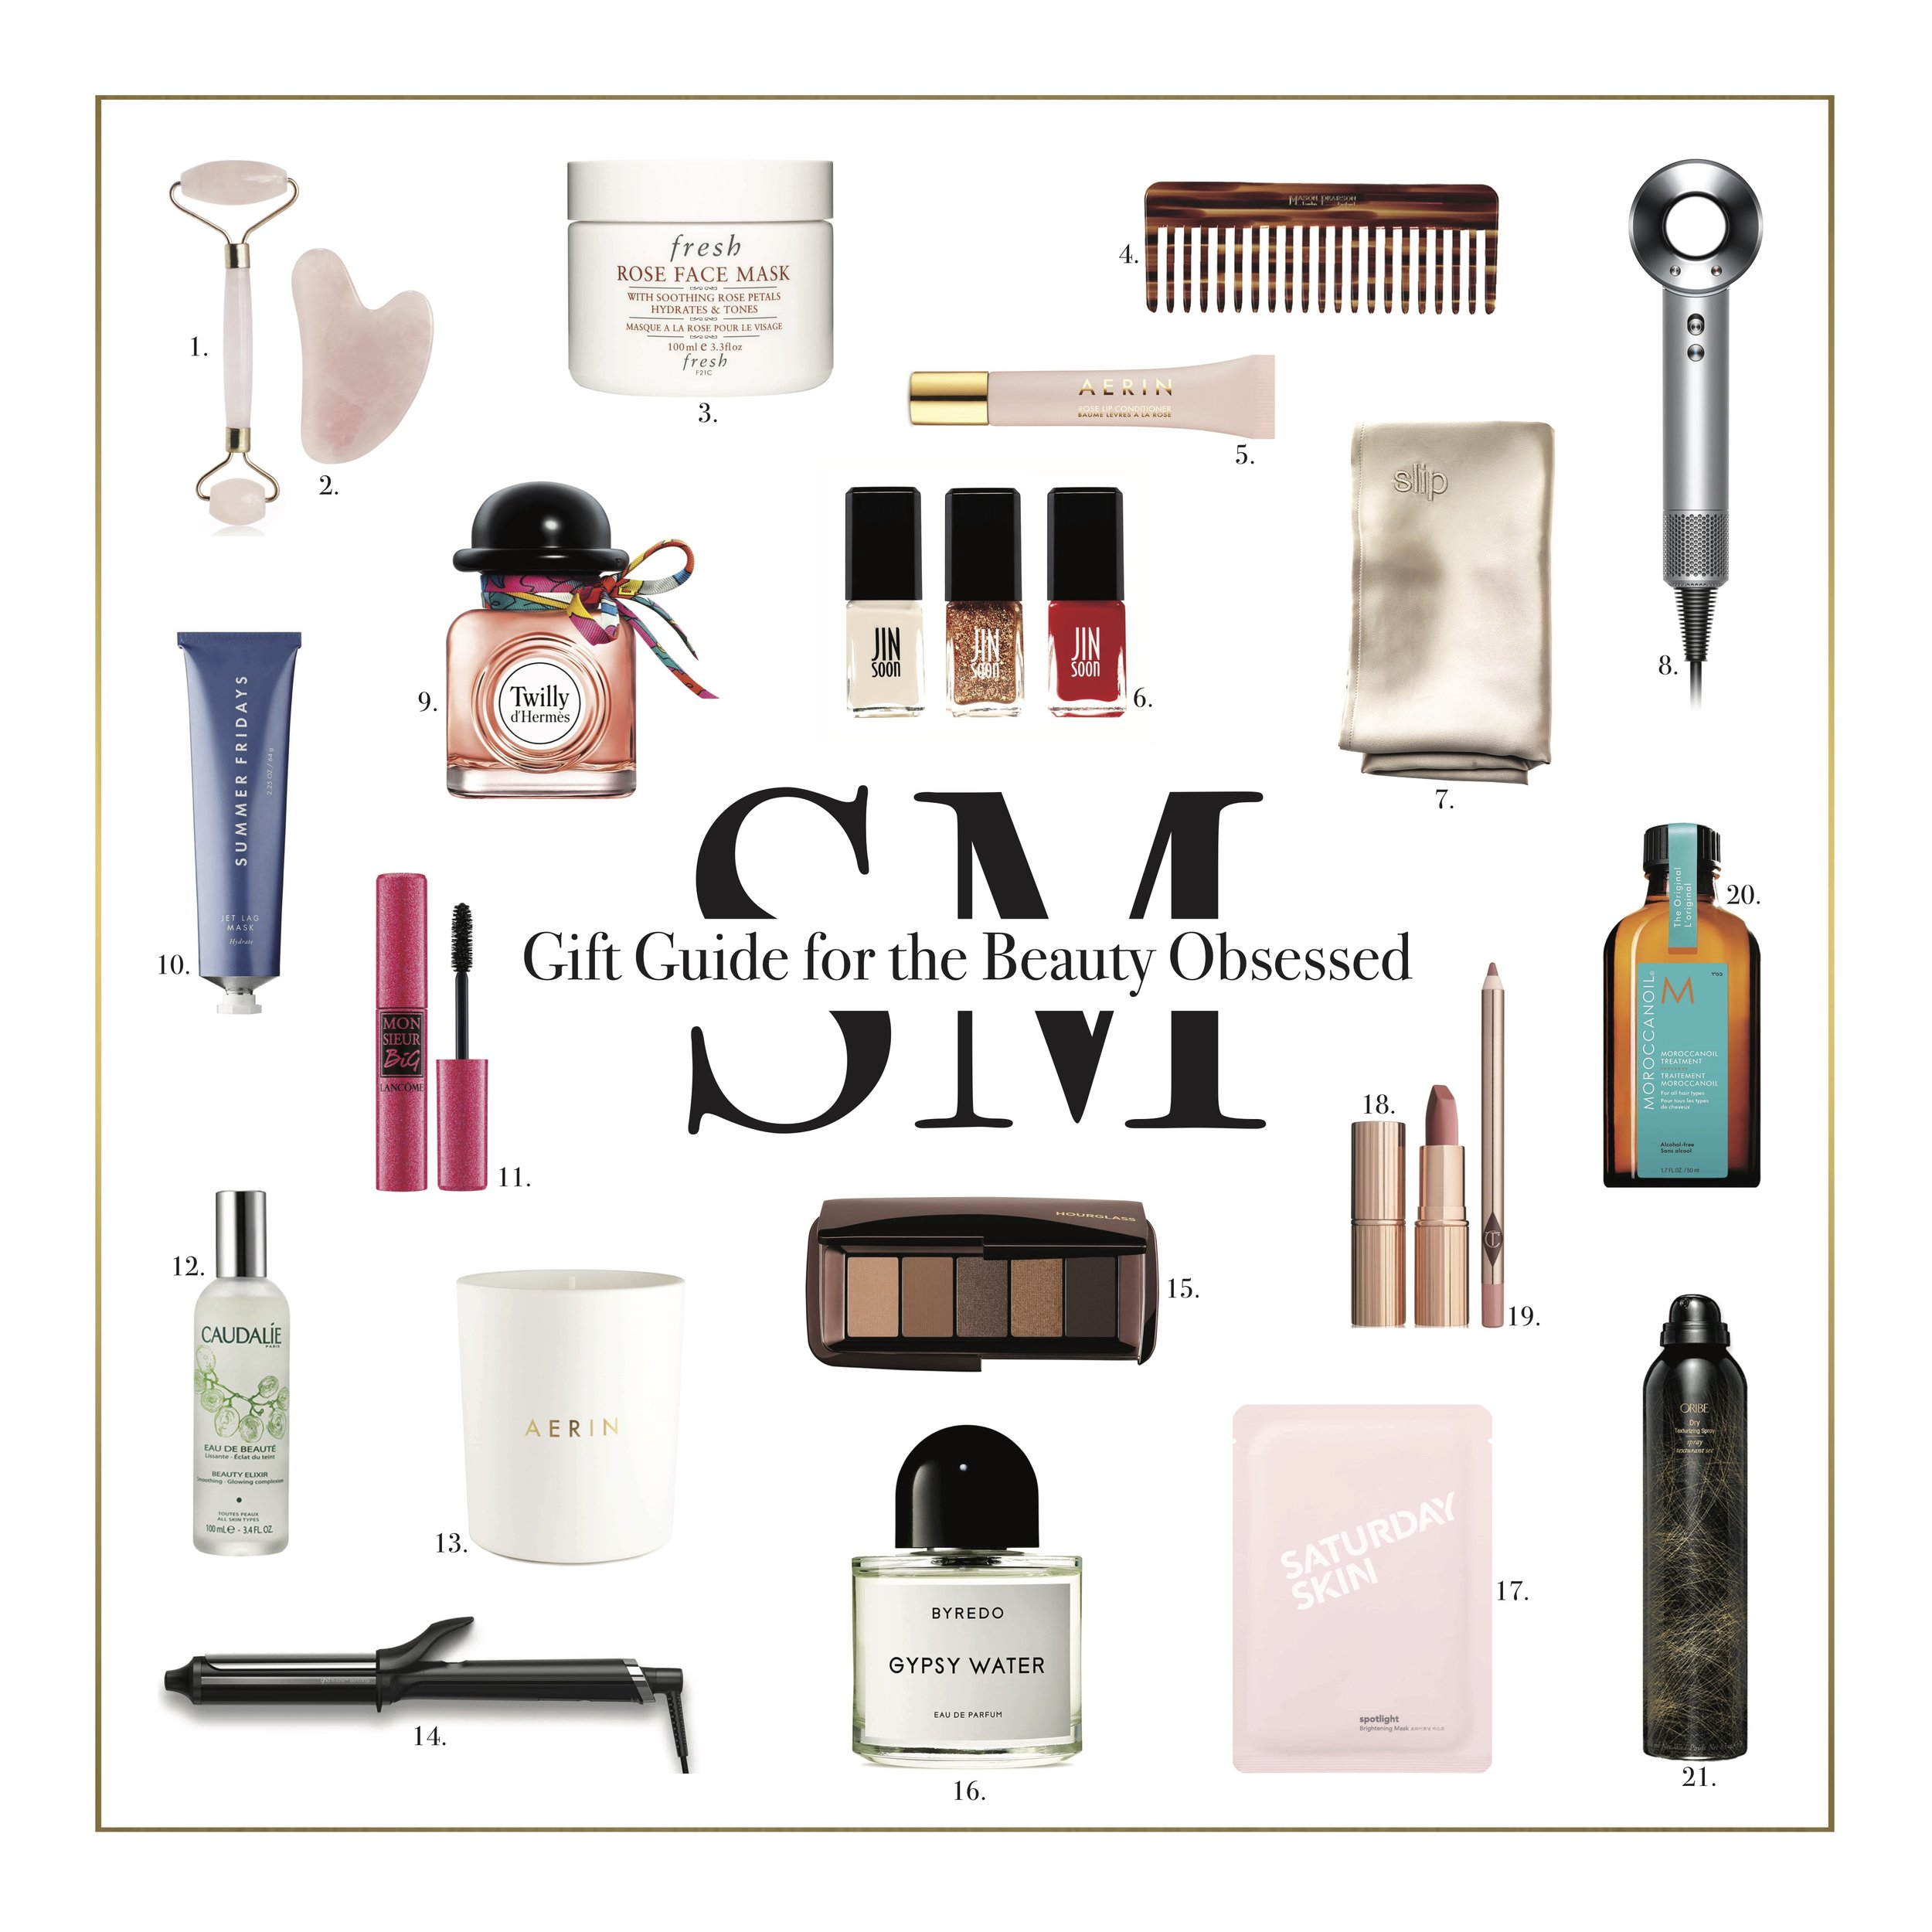 Beauty Gift Guide.jpg